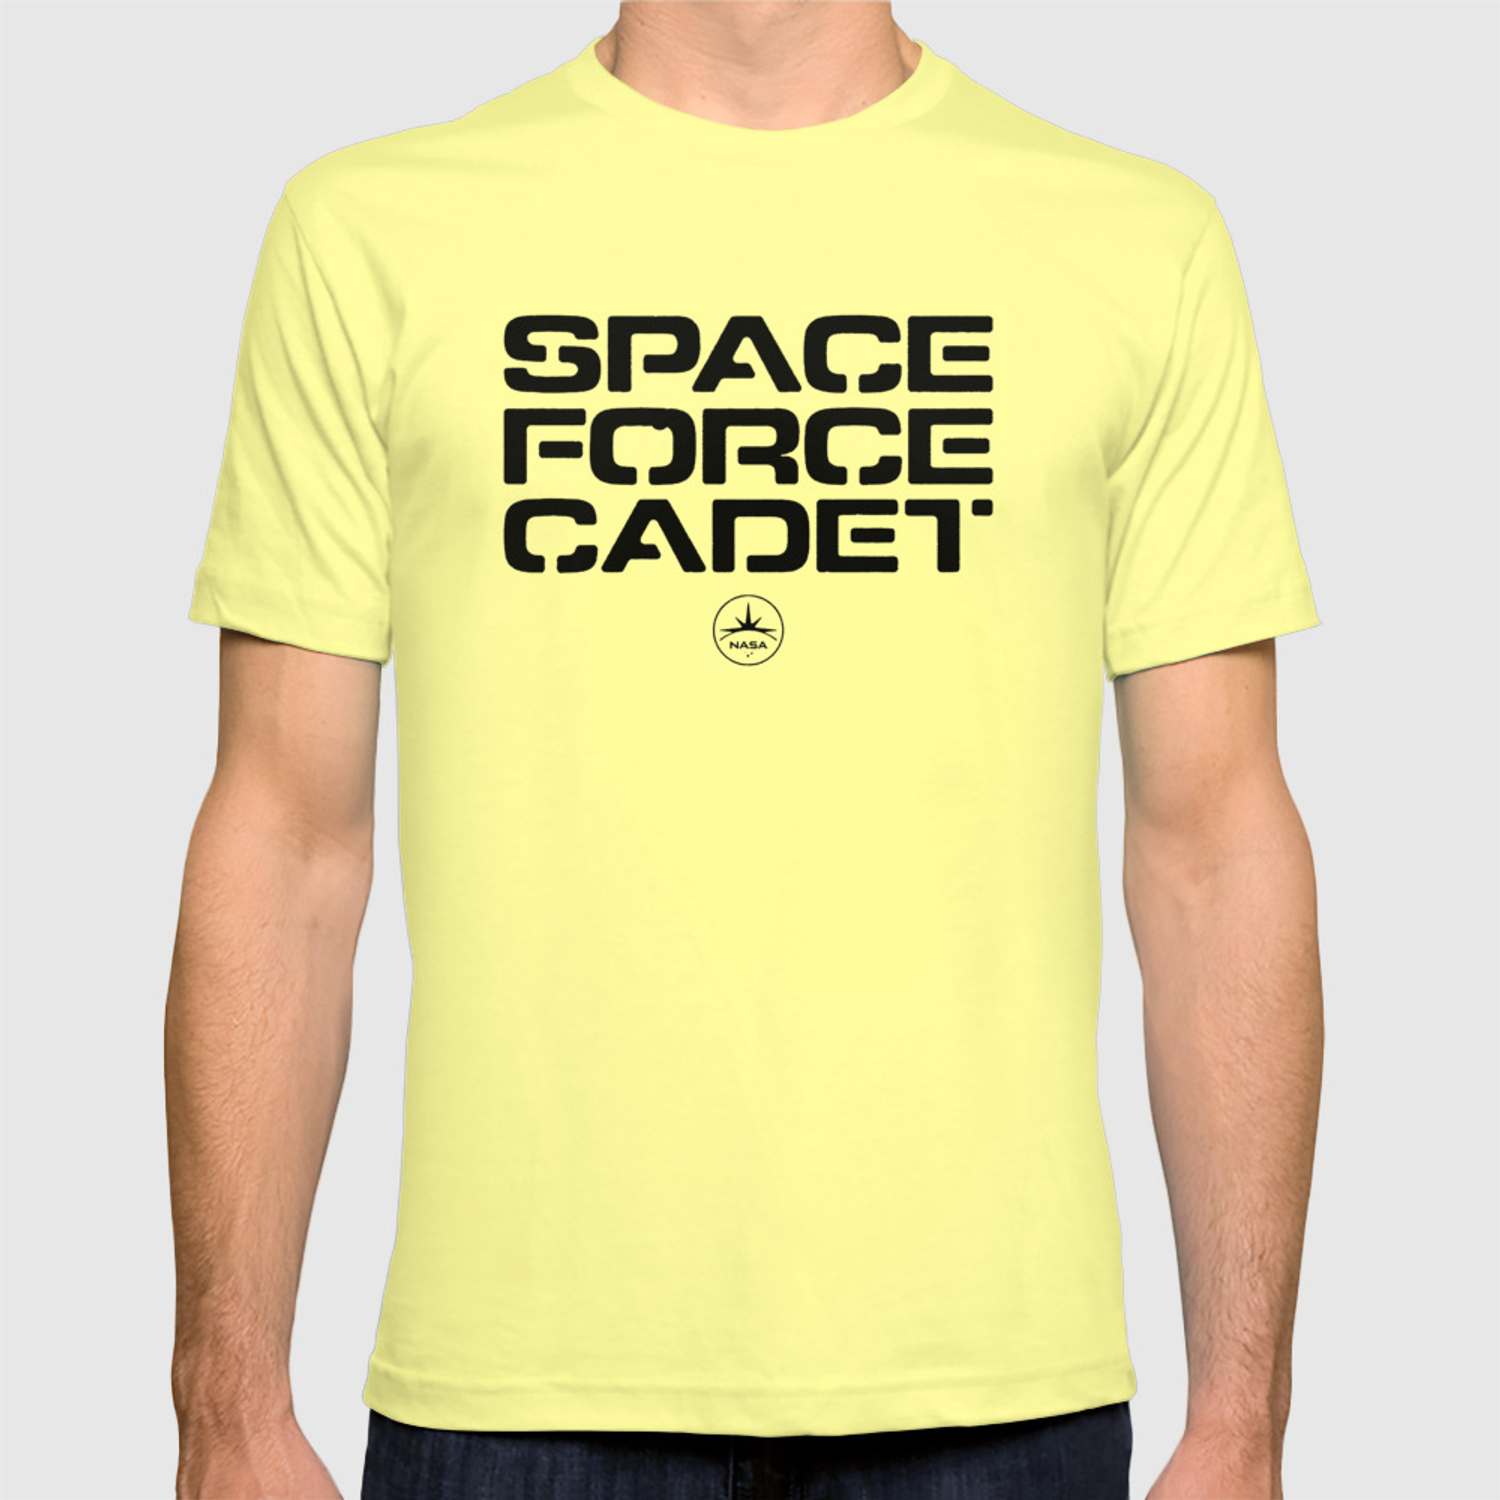 62bbf5d3bd Space Force T-shirt by anyonestudio | Society6